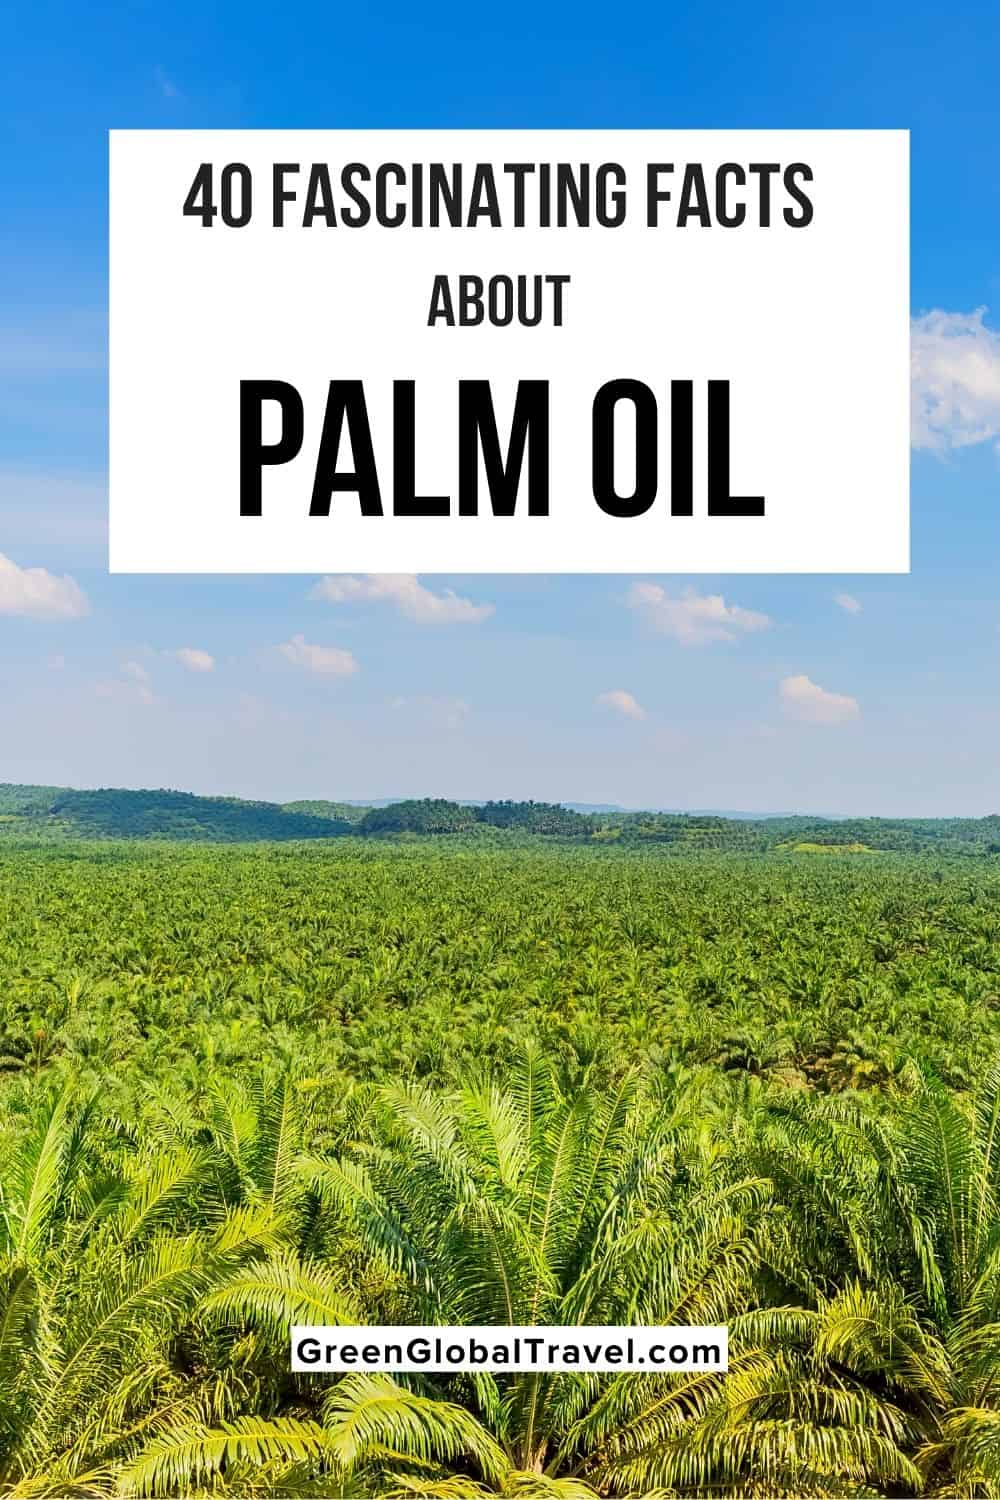 40 Fascinating Facts about Palm Oil including Deforestation for Palm Oil, Palm Oil & Orangutans, Facts About Sustainable Palm Oil, Palm Oil Products List and more!